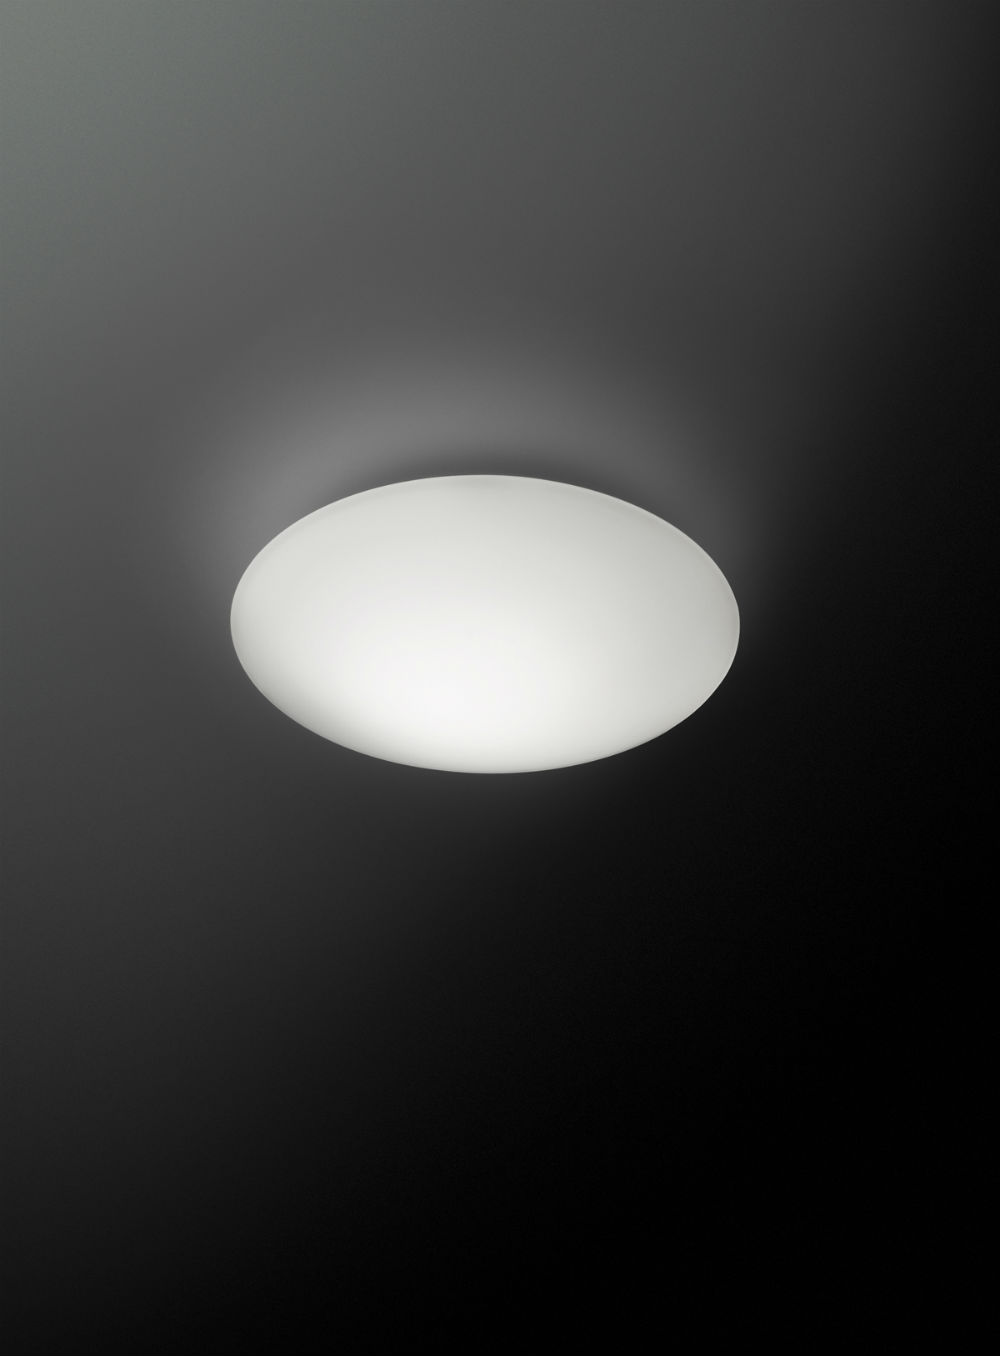 Puck Single Wall/Ceiling lamp ø24,4cm 1xLED 7.35W Lacquered matt white